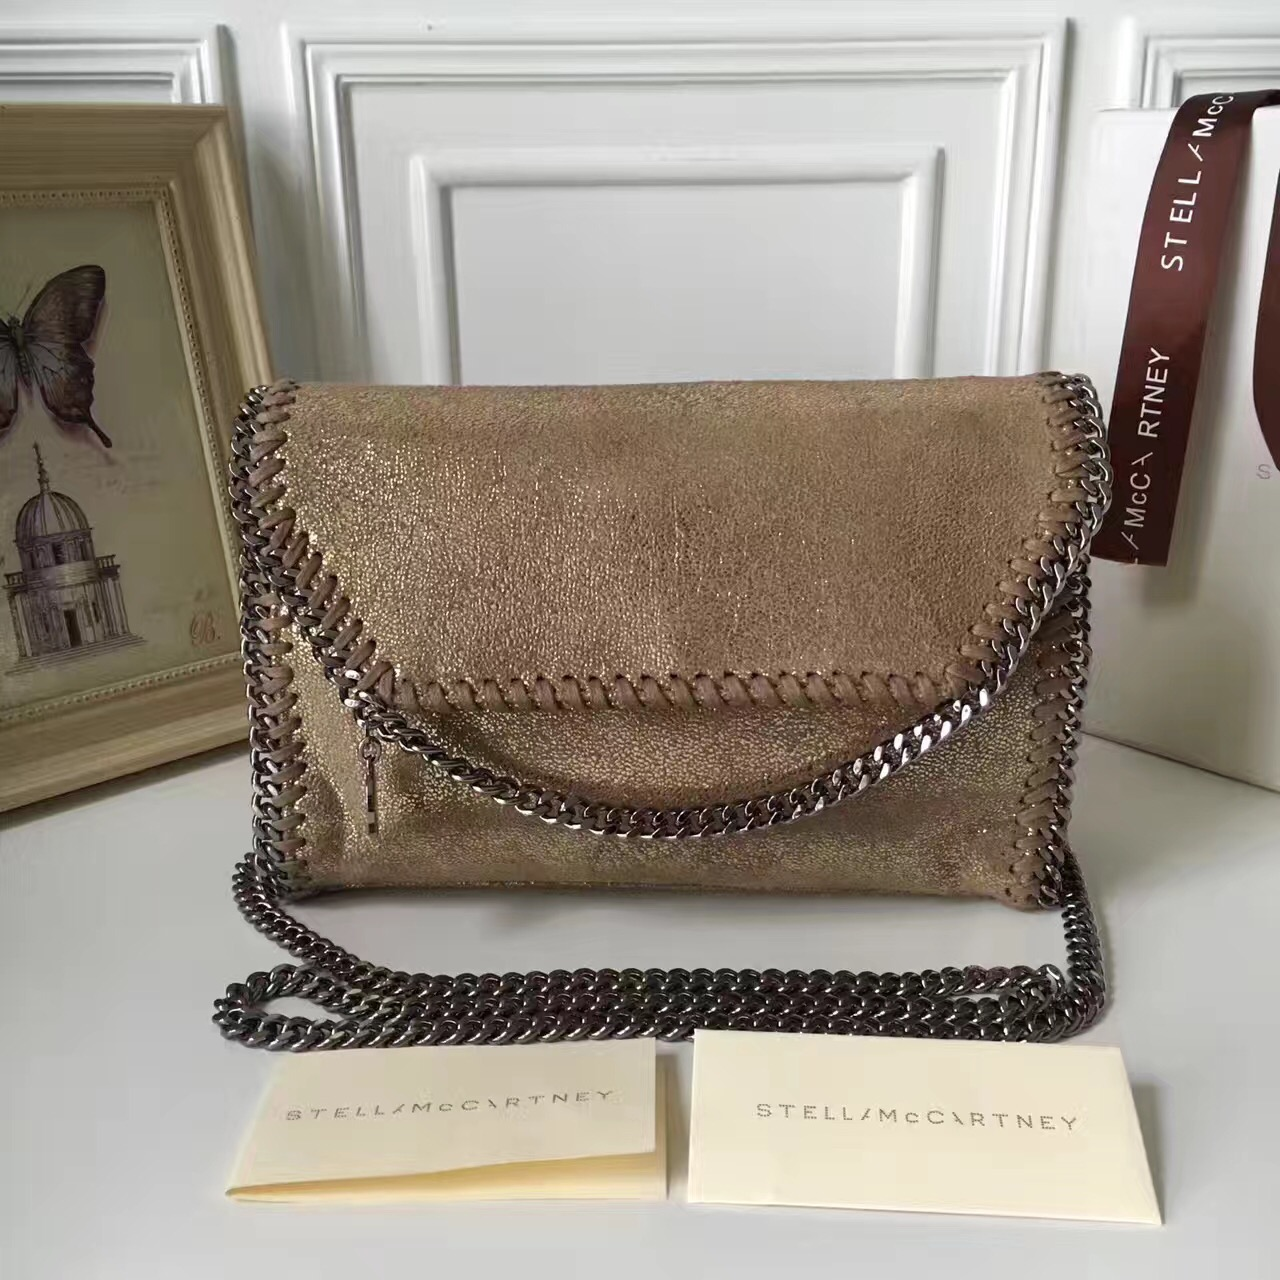 d355b3a794 Stella McCartney Falabella Shaggy Deer Mini Bag Metallic Gold ...